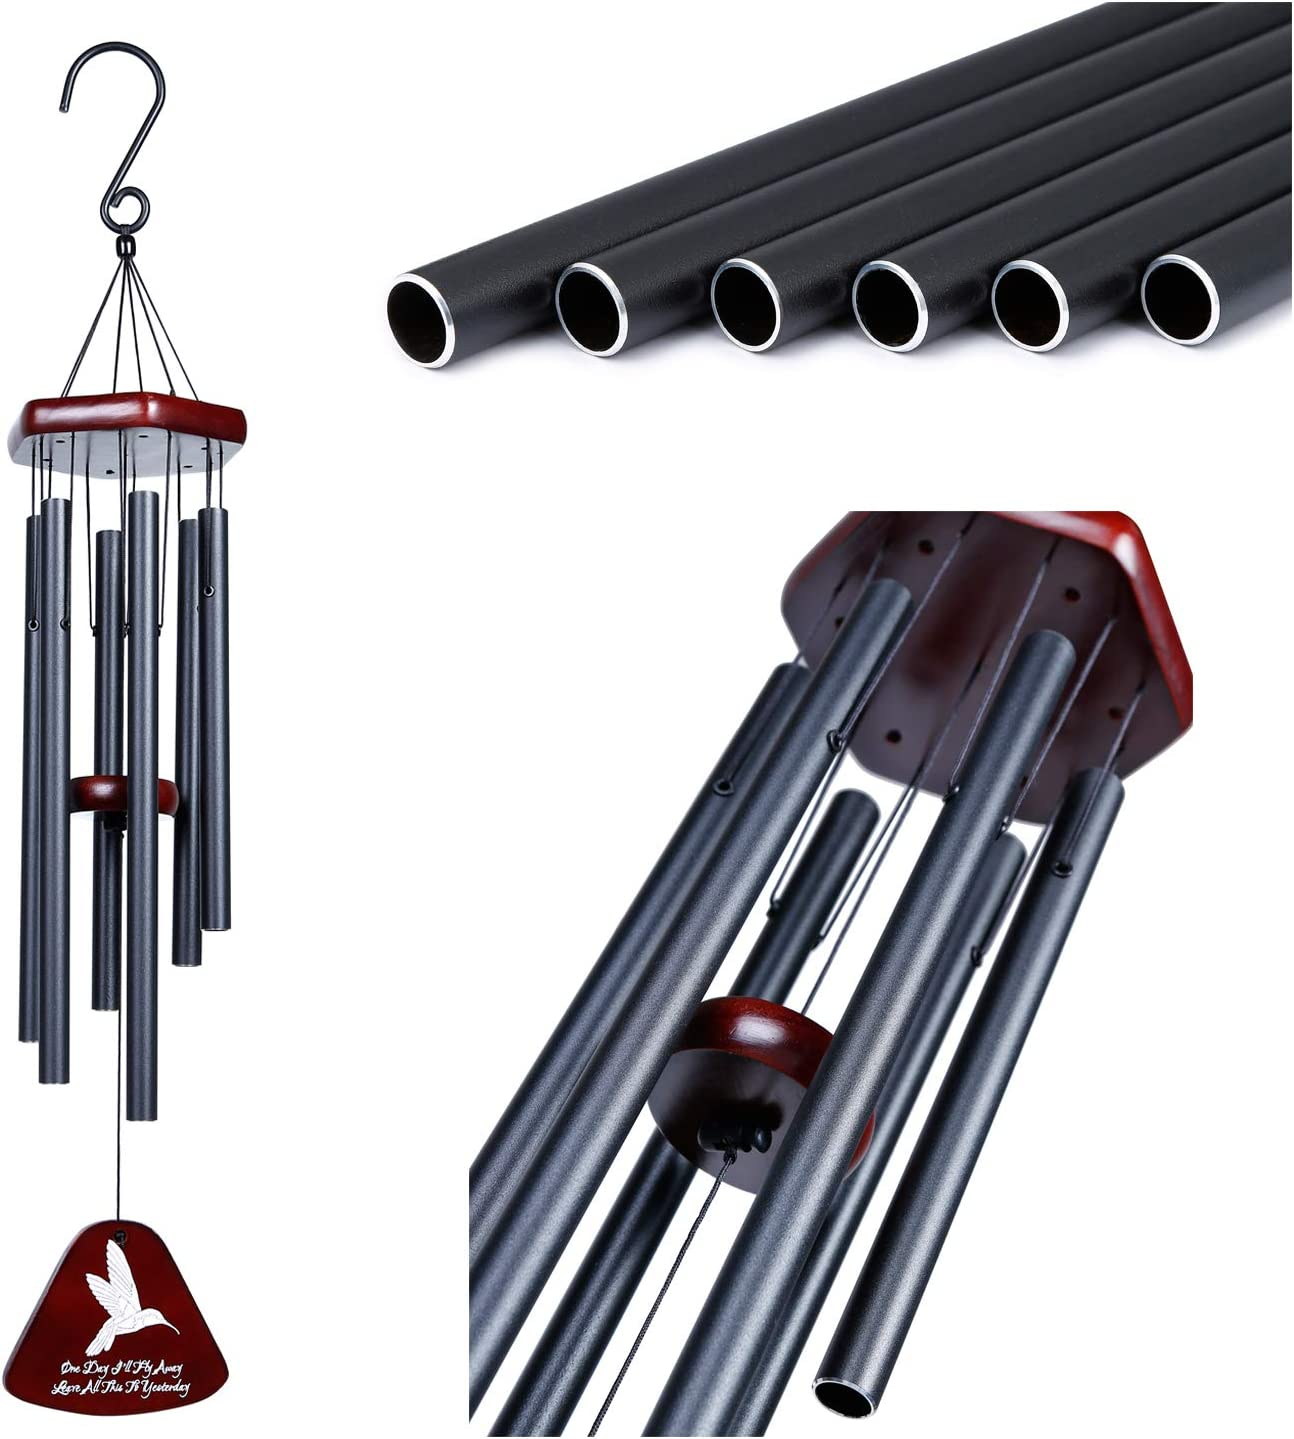 Aedgoye Sympathy Wind Chimes for Outside, Memorial Wind Chimes for Loss of A Loved One Prime Soothing Melodic Tones&Great As A Quality Gift Or to Keep for Your Own Patio, Porch, Garden, Or Backyard